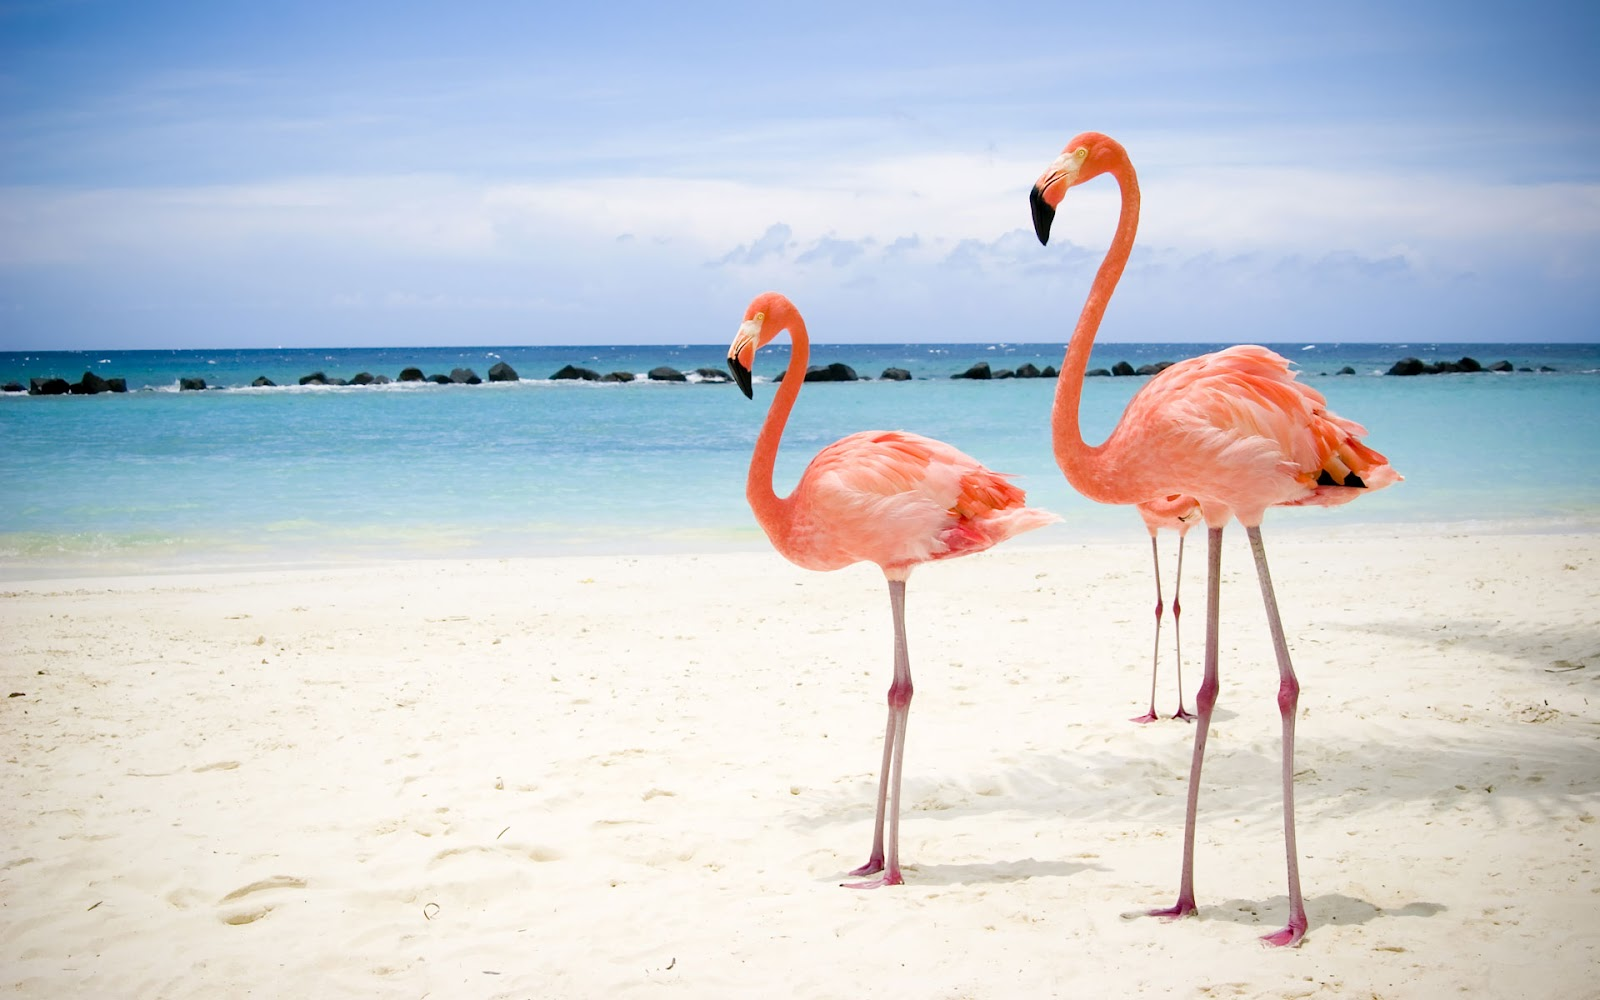 iphone drone video with Flamingo on Flamingo further Bla Bakgrunn moreover Apple Iphone 8 Plus 256gb in addition Iphone 10 Plus furthermore Google Earth Update 3d View Voyages.